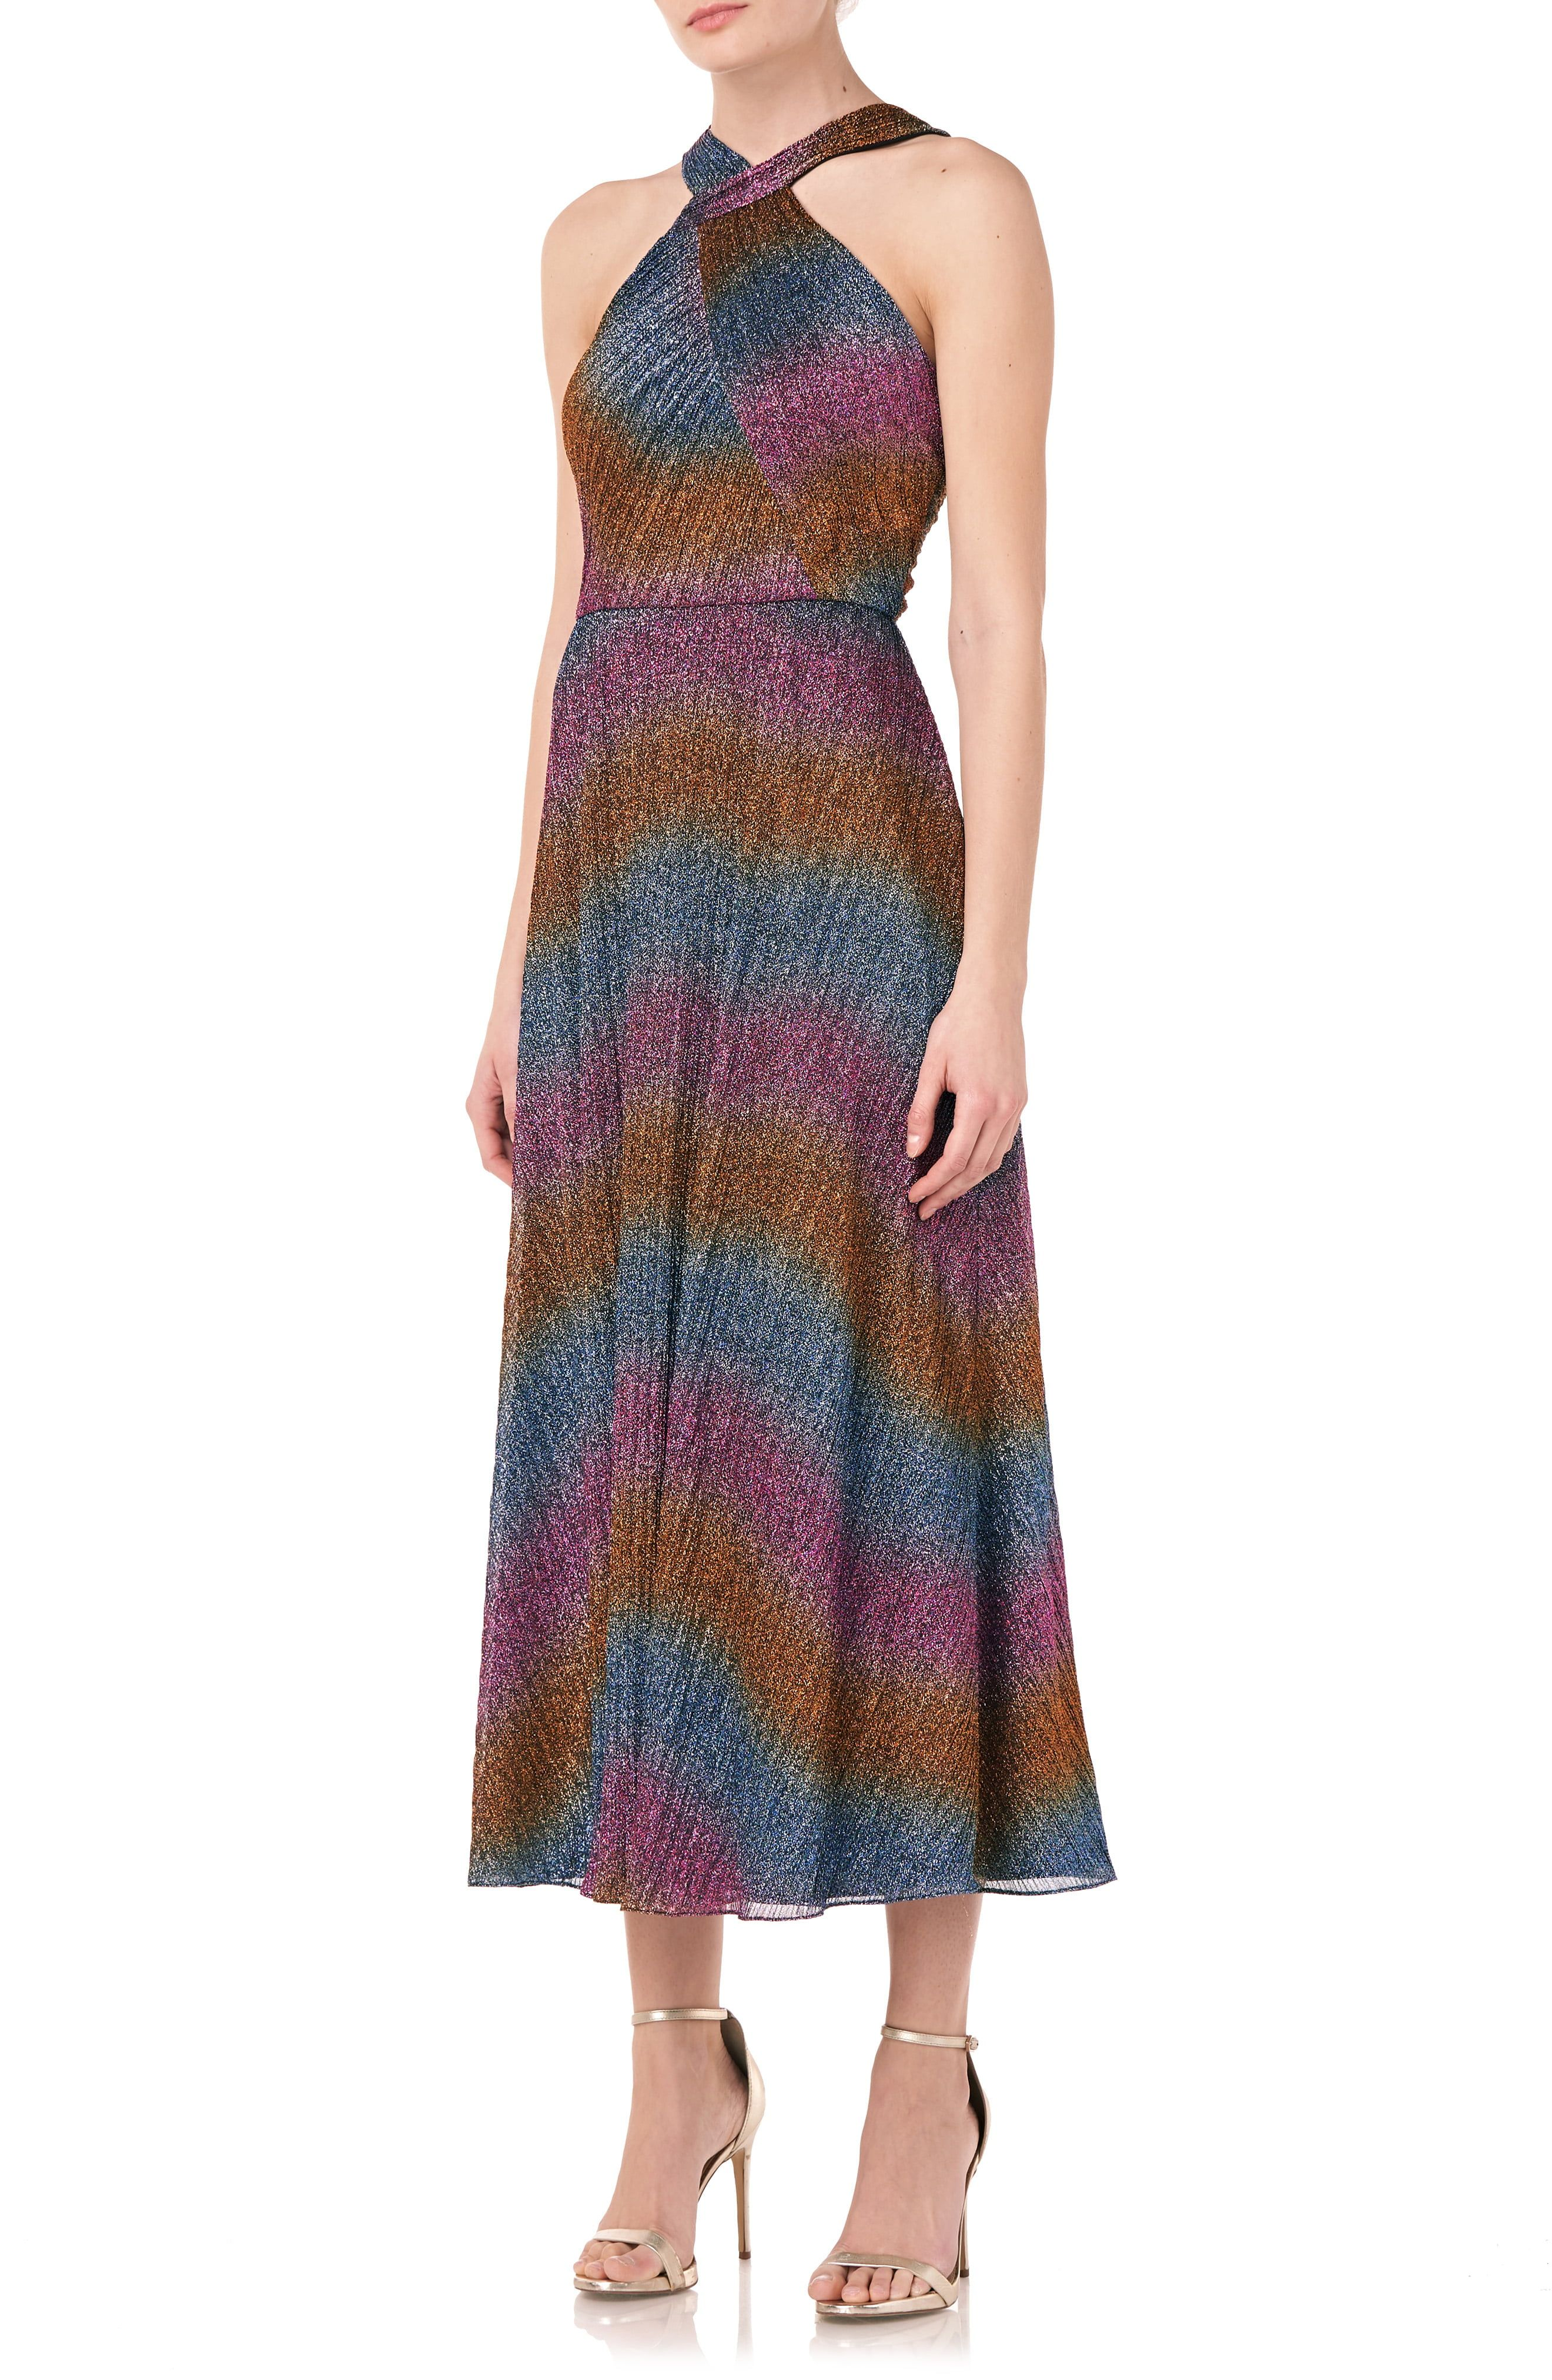 Dance right into the disco of your dreams in this shimmer-drenched striped dress with a retro feel thanks to a halter top and a skirt begging to be twirled. Style Name:Ml Monique Lhuillier Rainbow Shine Halter Dress. Style Number: 6108277. Available in stores.